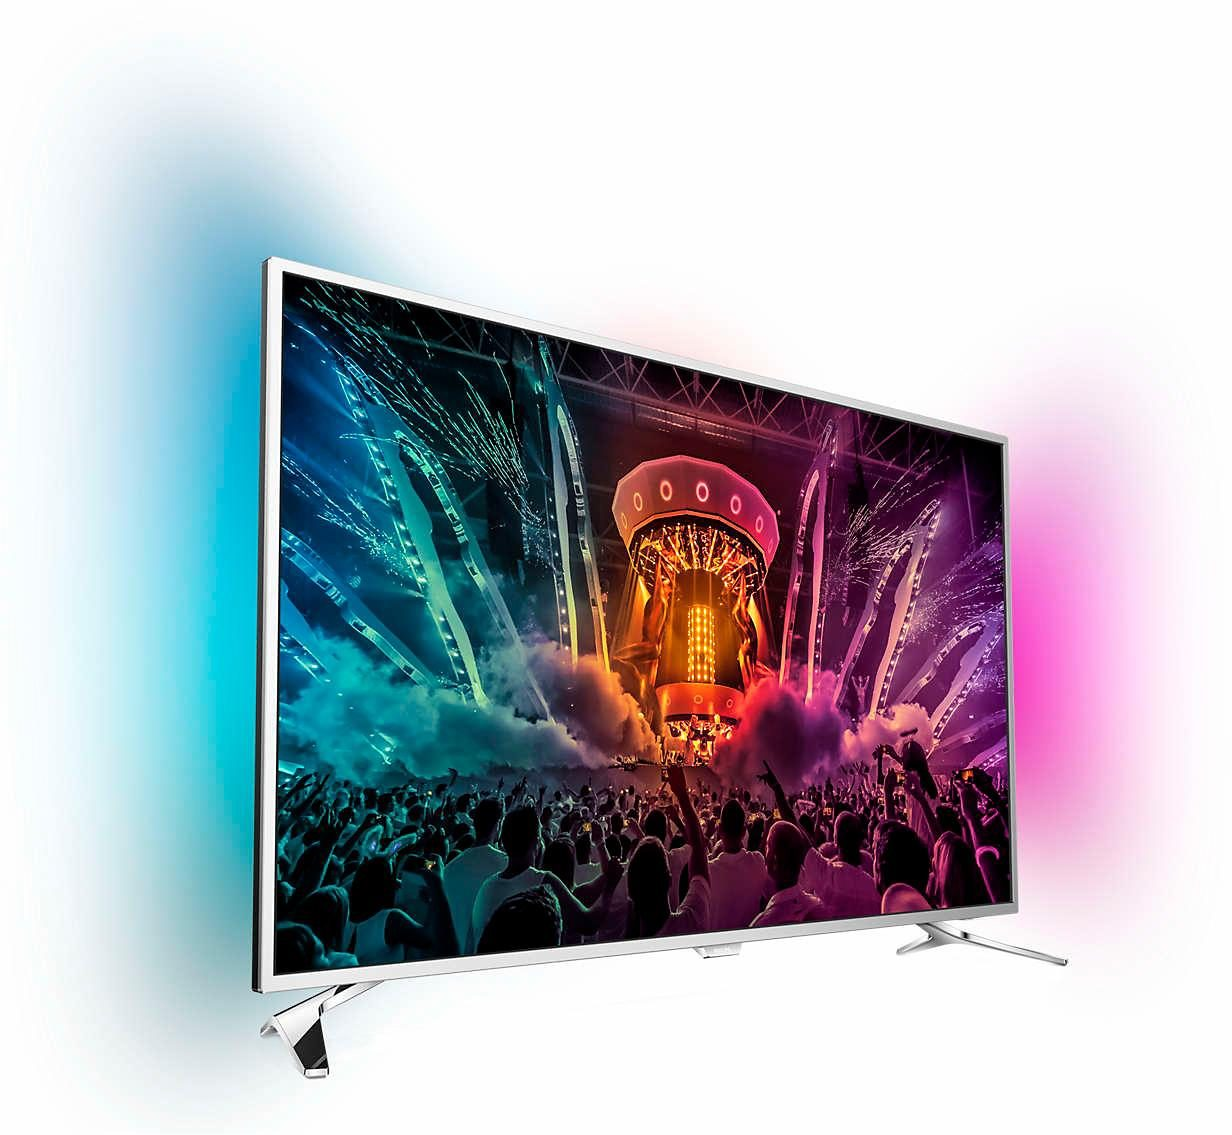 Philips 49PUS6501/12, LED Fernseher, 123 cm (49 Zoll), 2160p (4K Ultra HD) Ambilight, Smart-TV